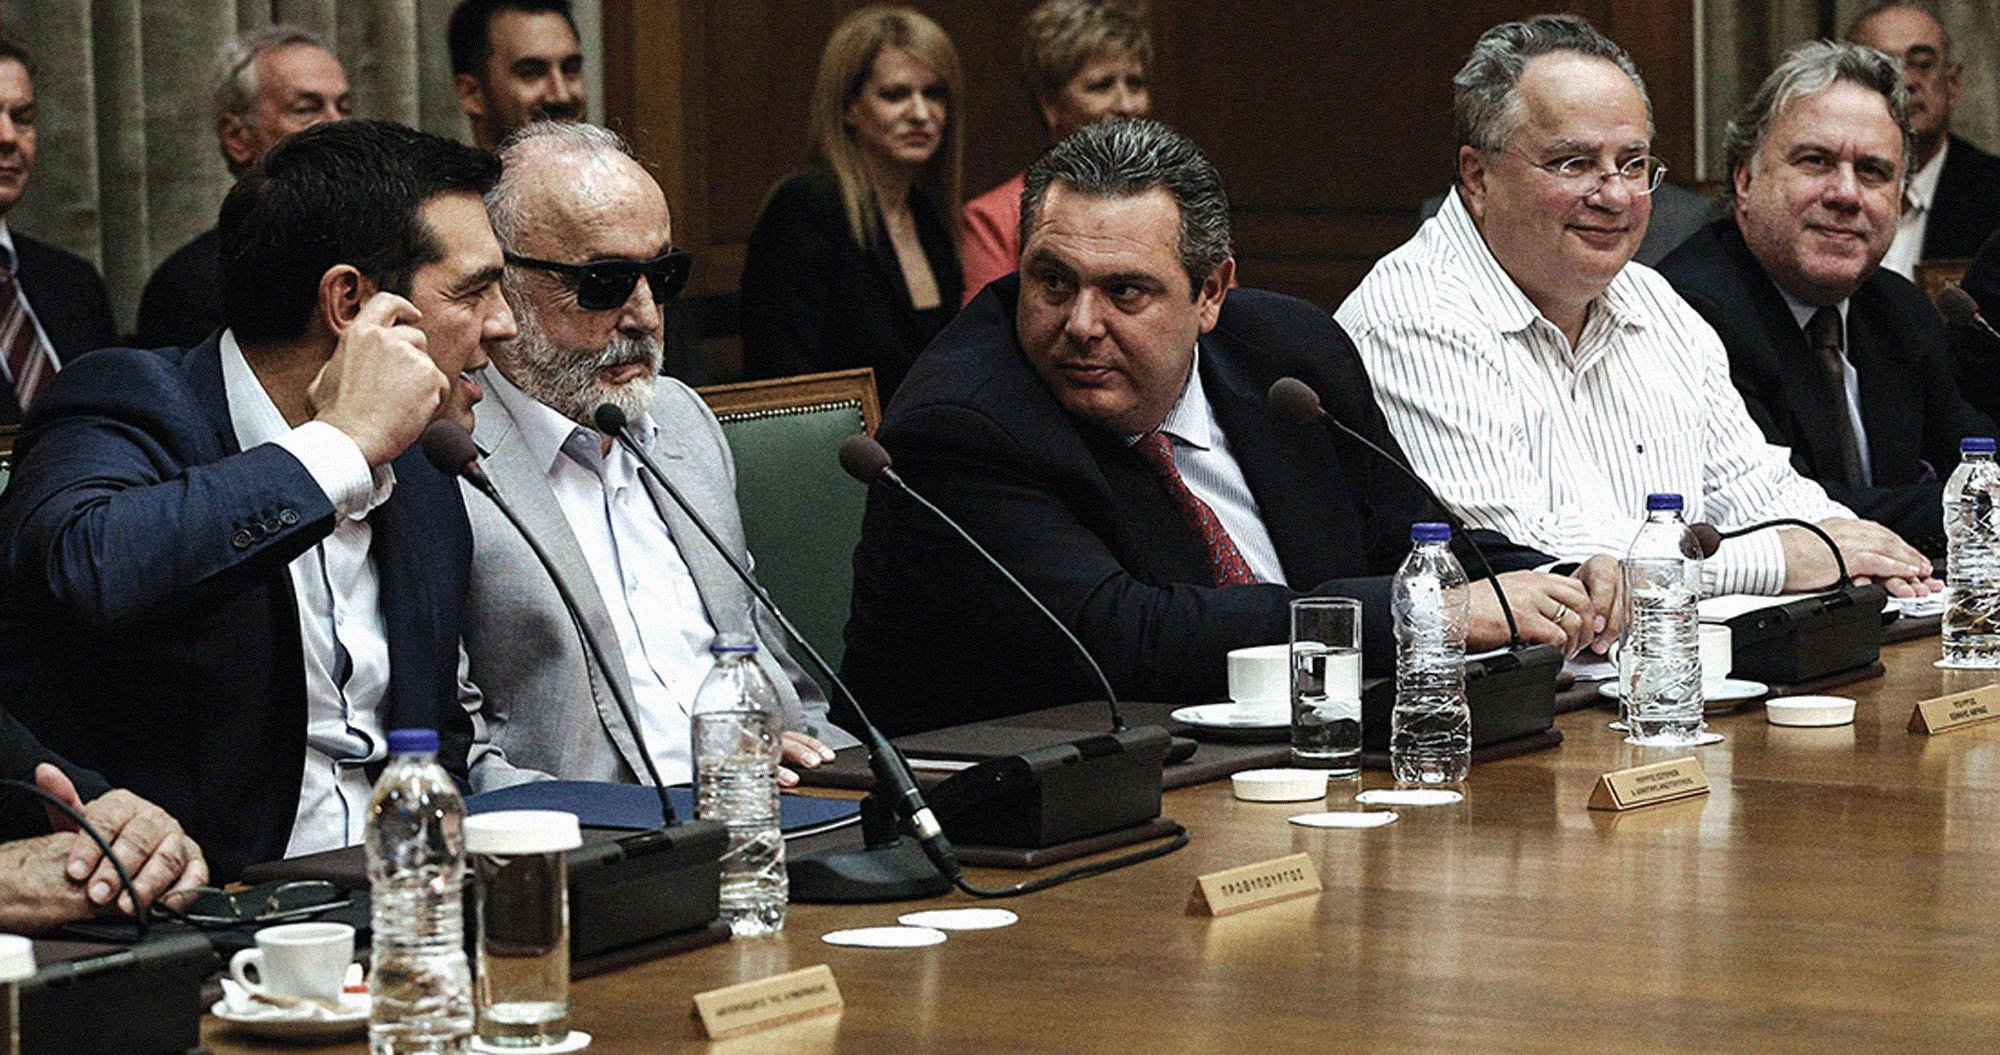 GREECE - POLITICS - CABINET